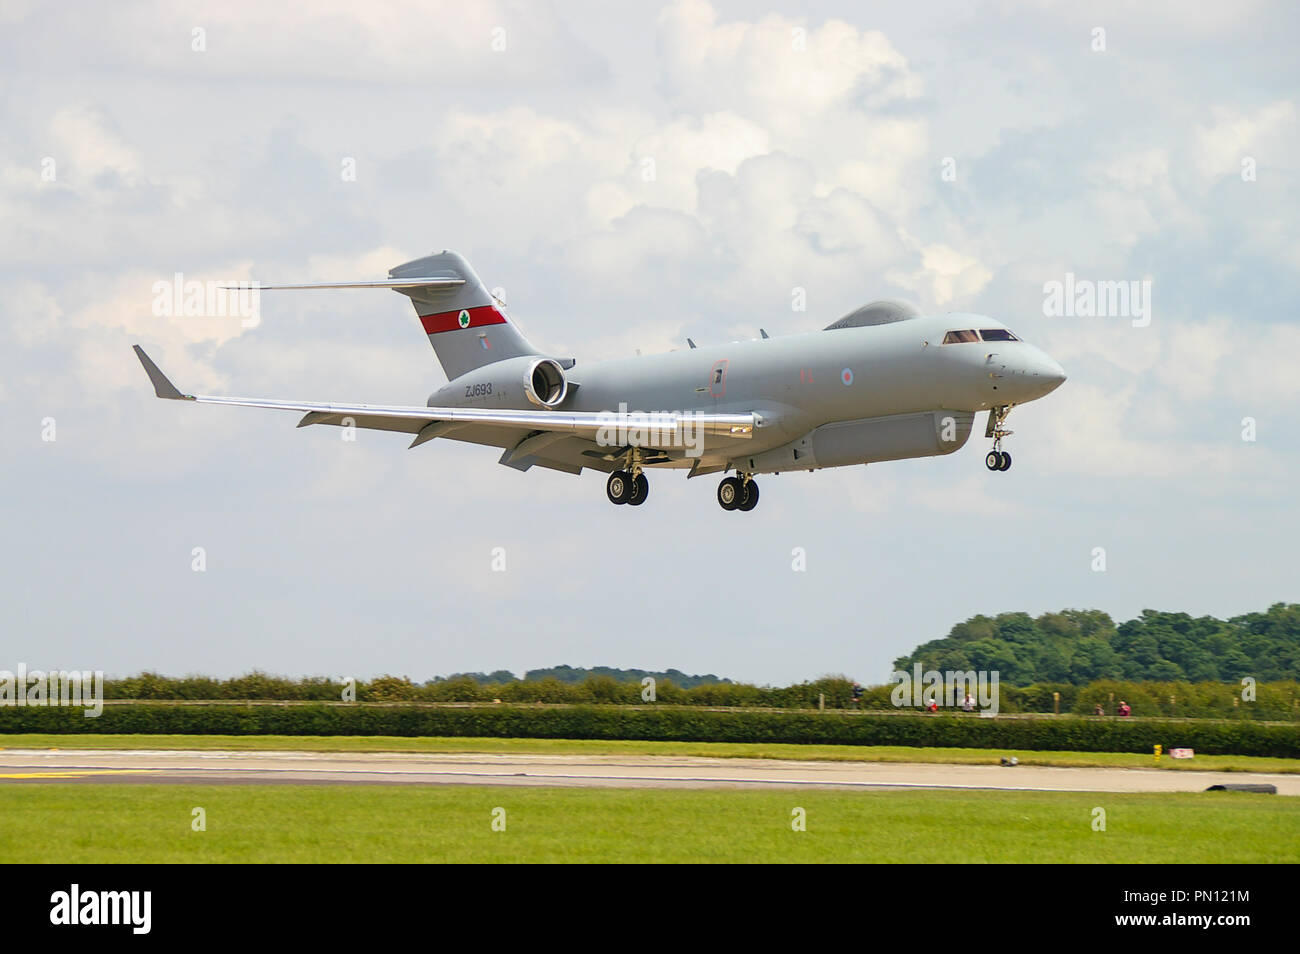 Royal Air Force RAF Raytheon Sentinel R1 airborne battlefield and ground surveillance aircraft. Based on the Bombardier Global Express. 5 Squadron - Stock Image